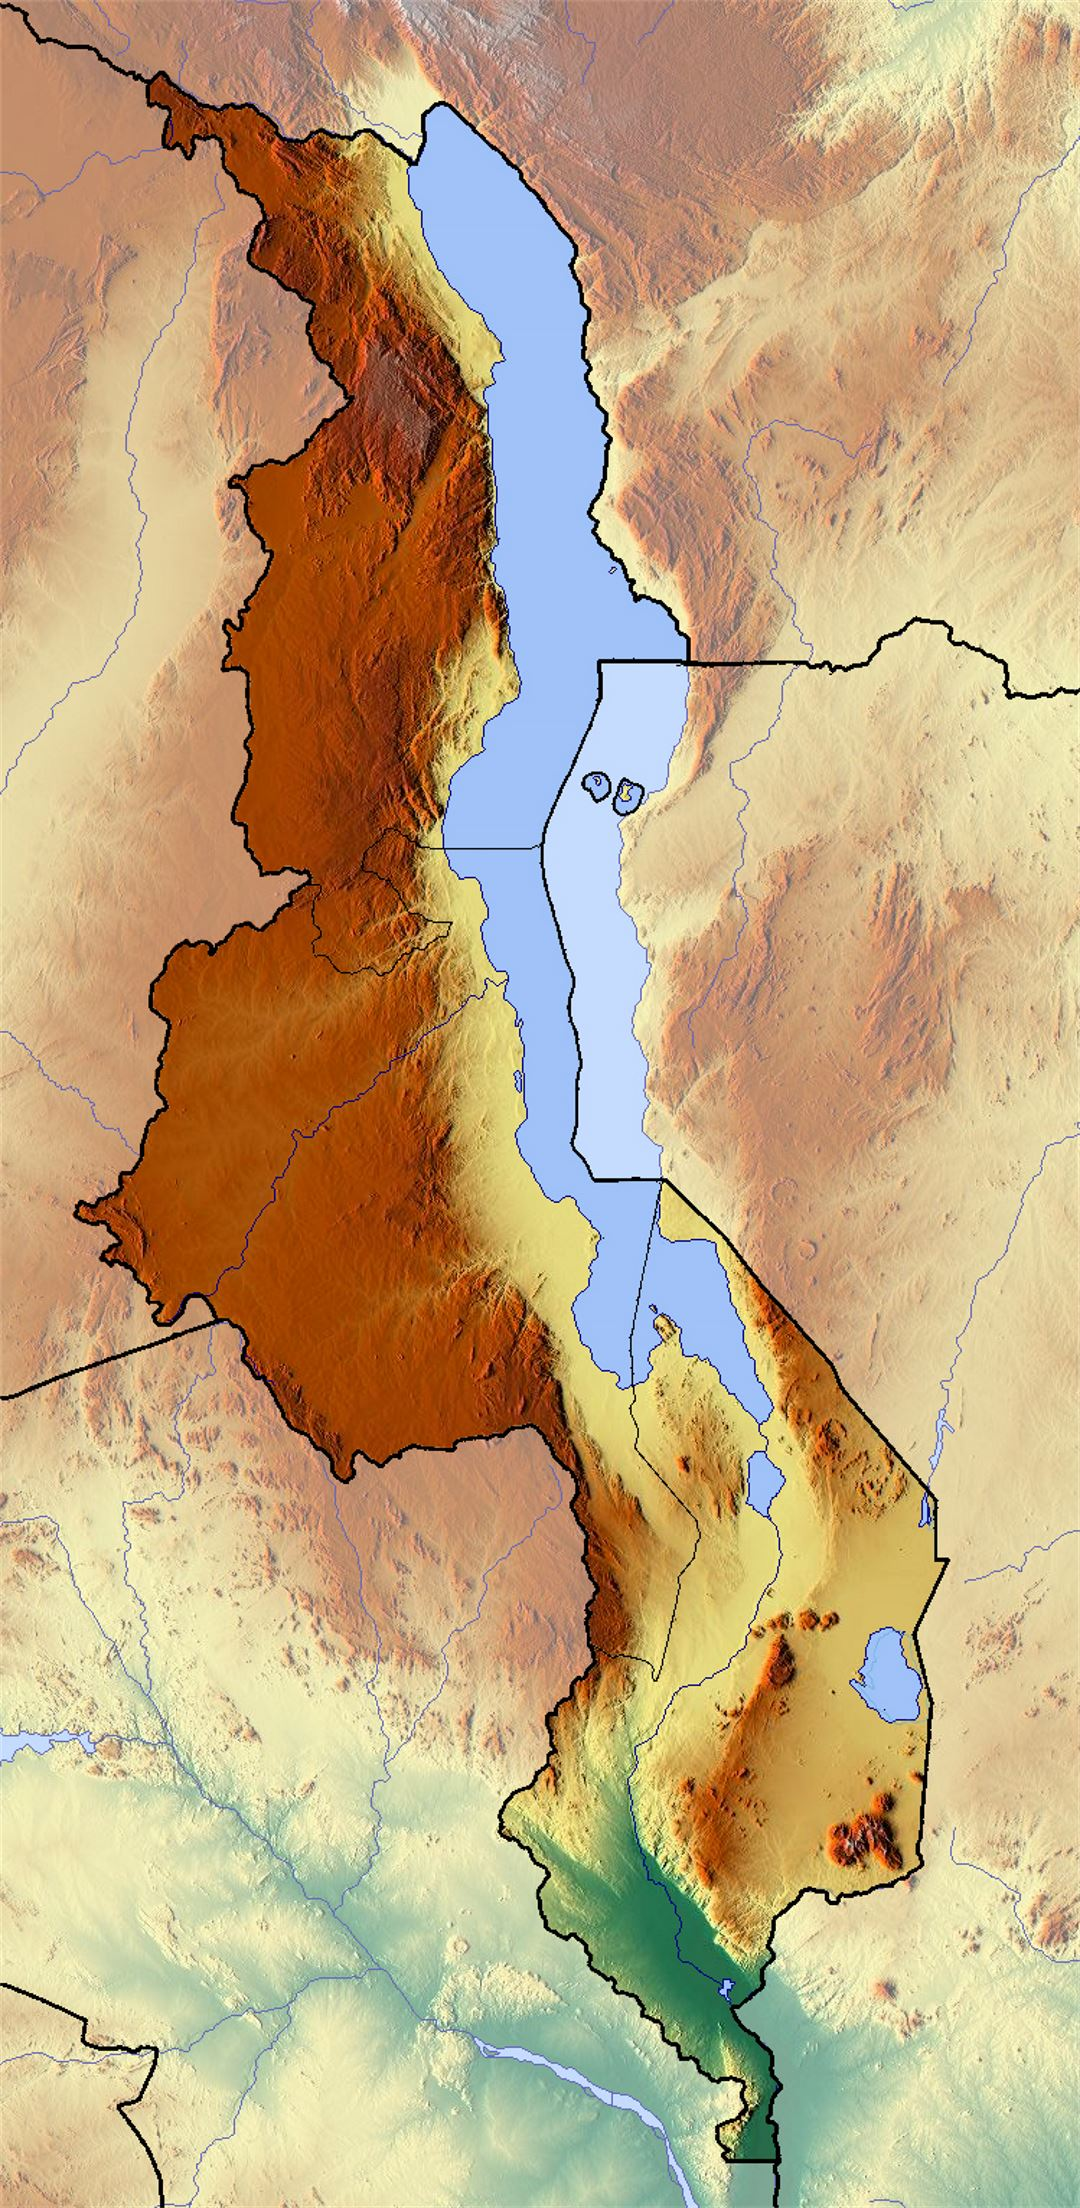 Detailed relief map of Malawi